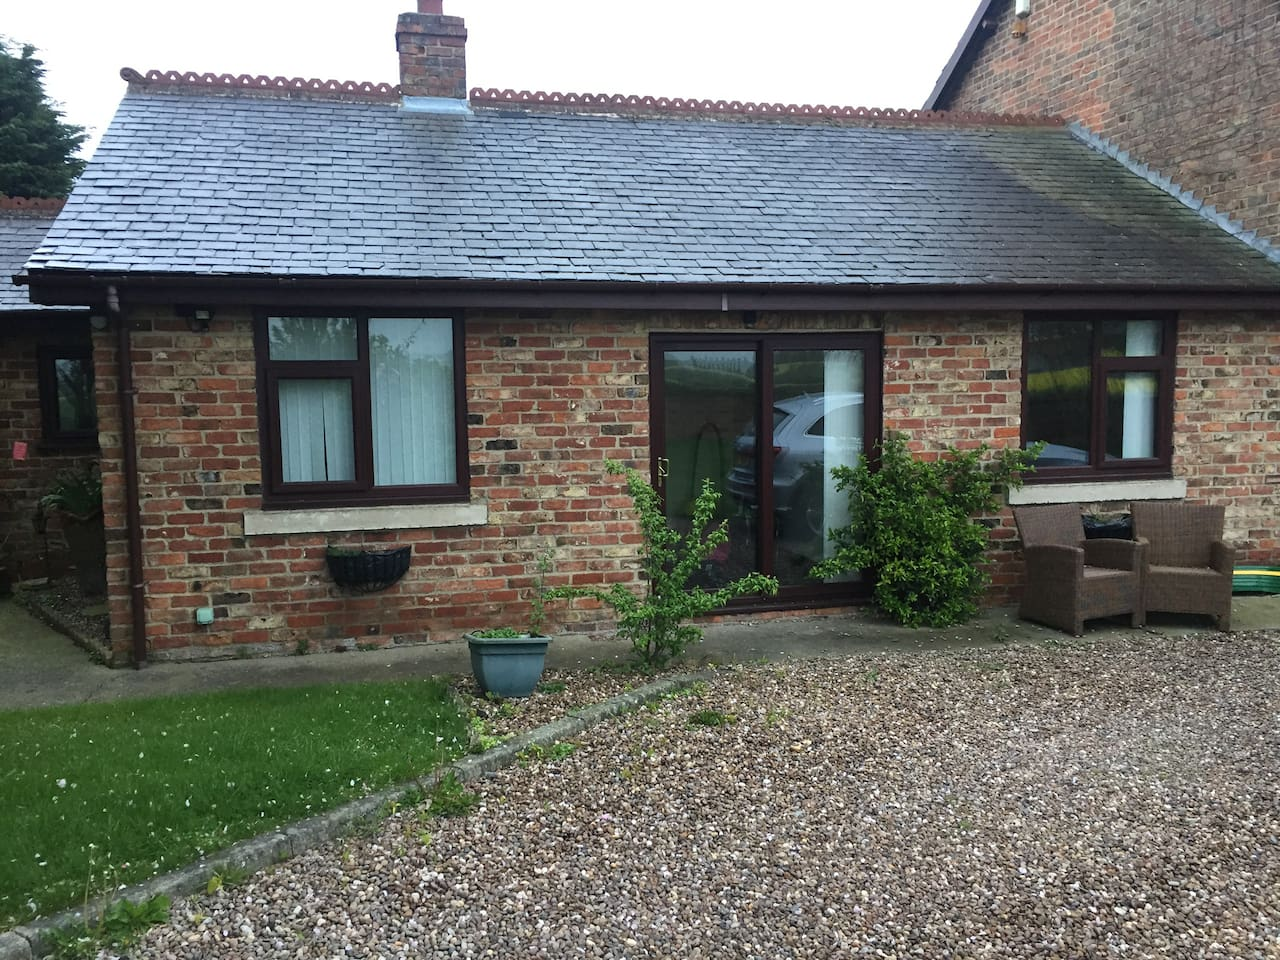 Self contained Bungalow with stunning views across fields